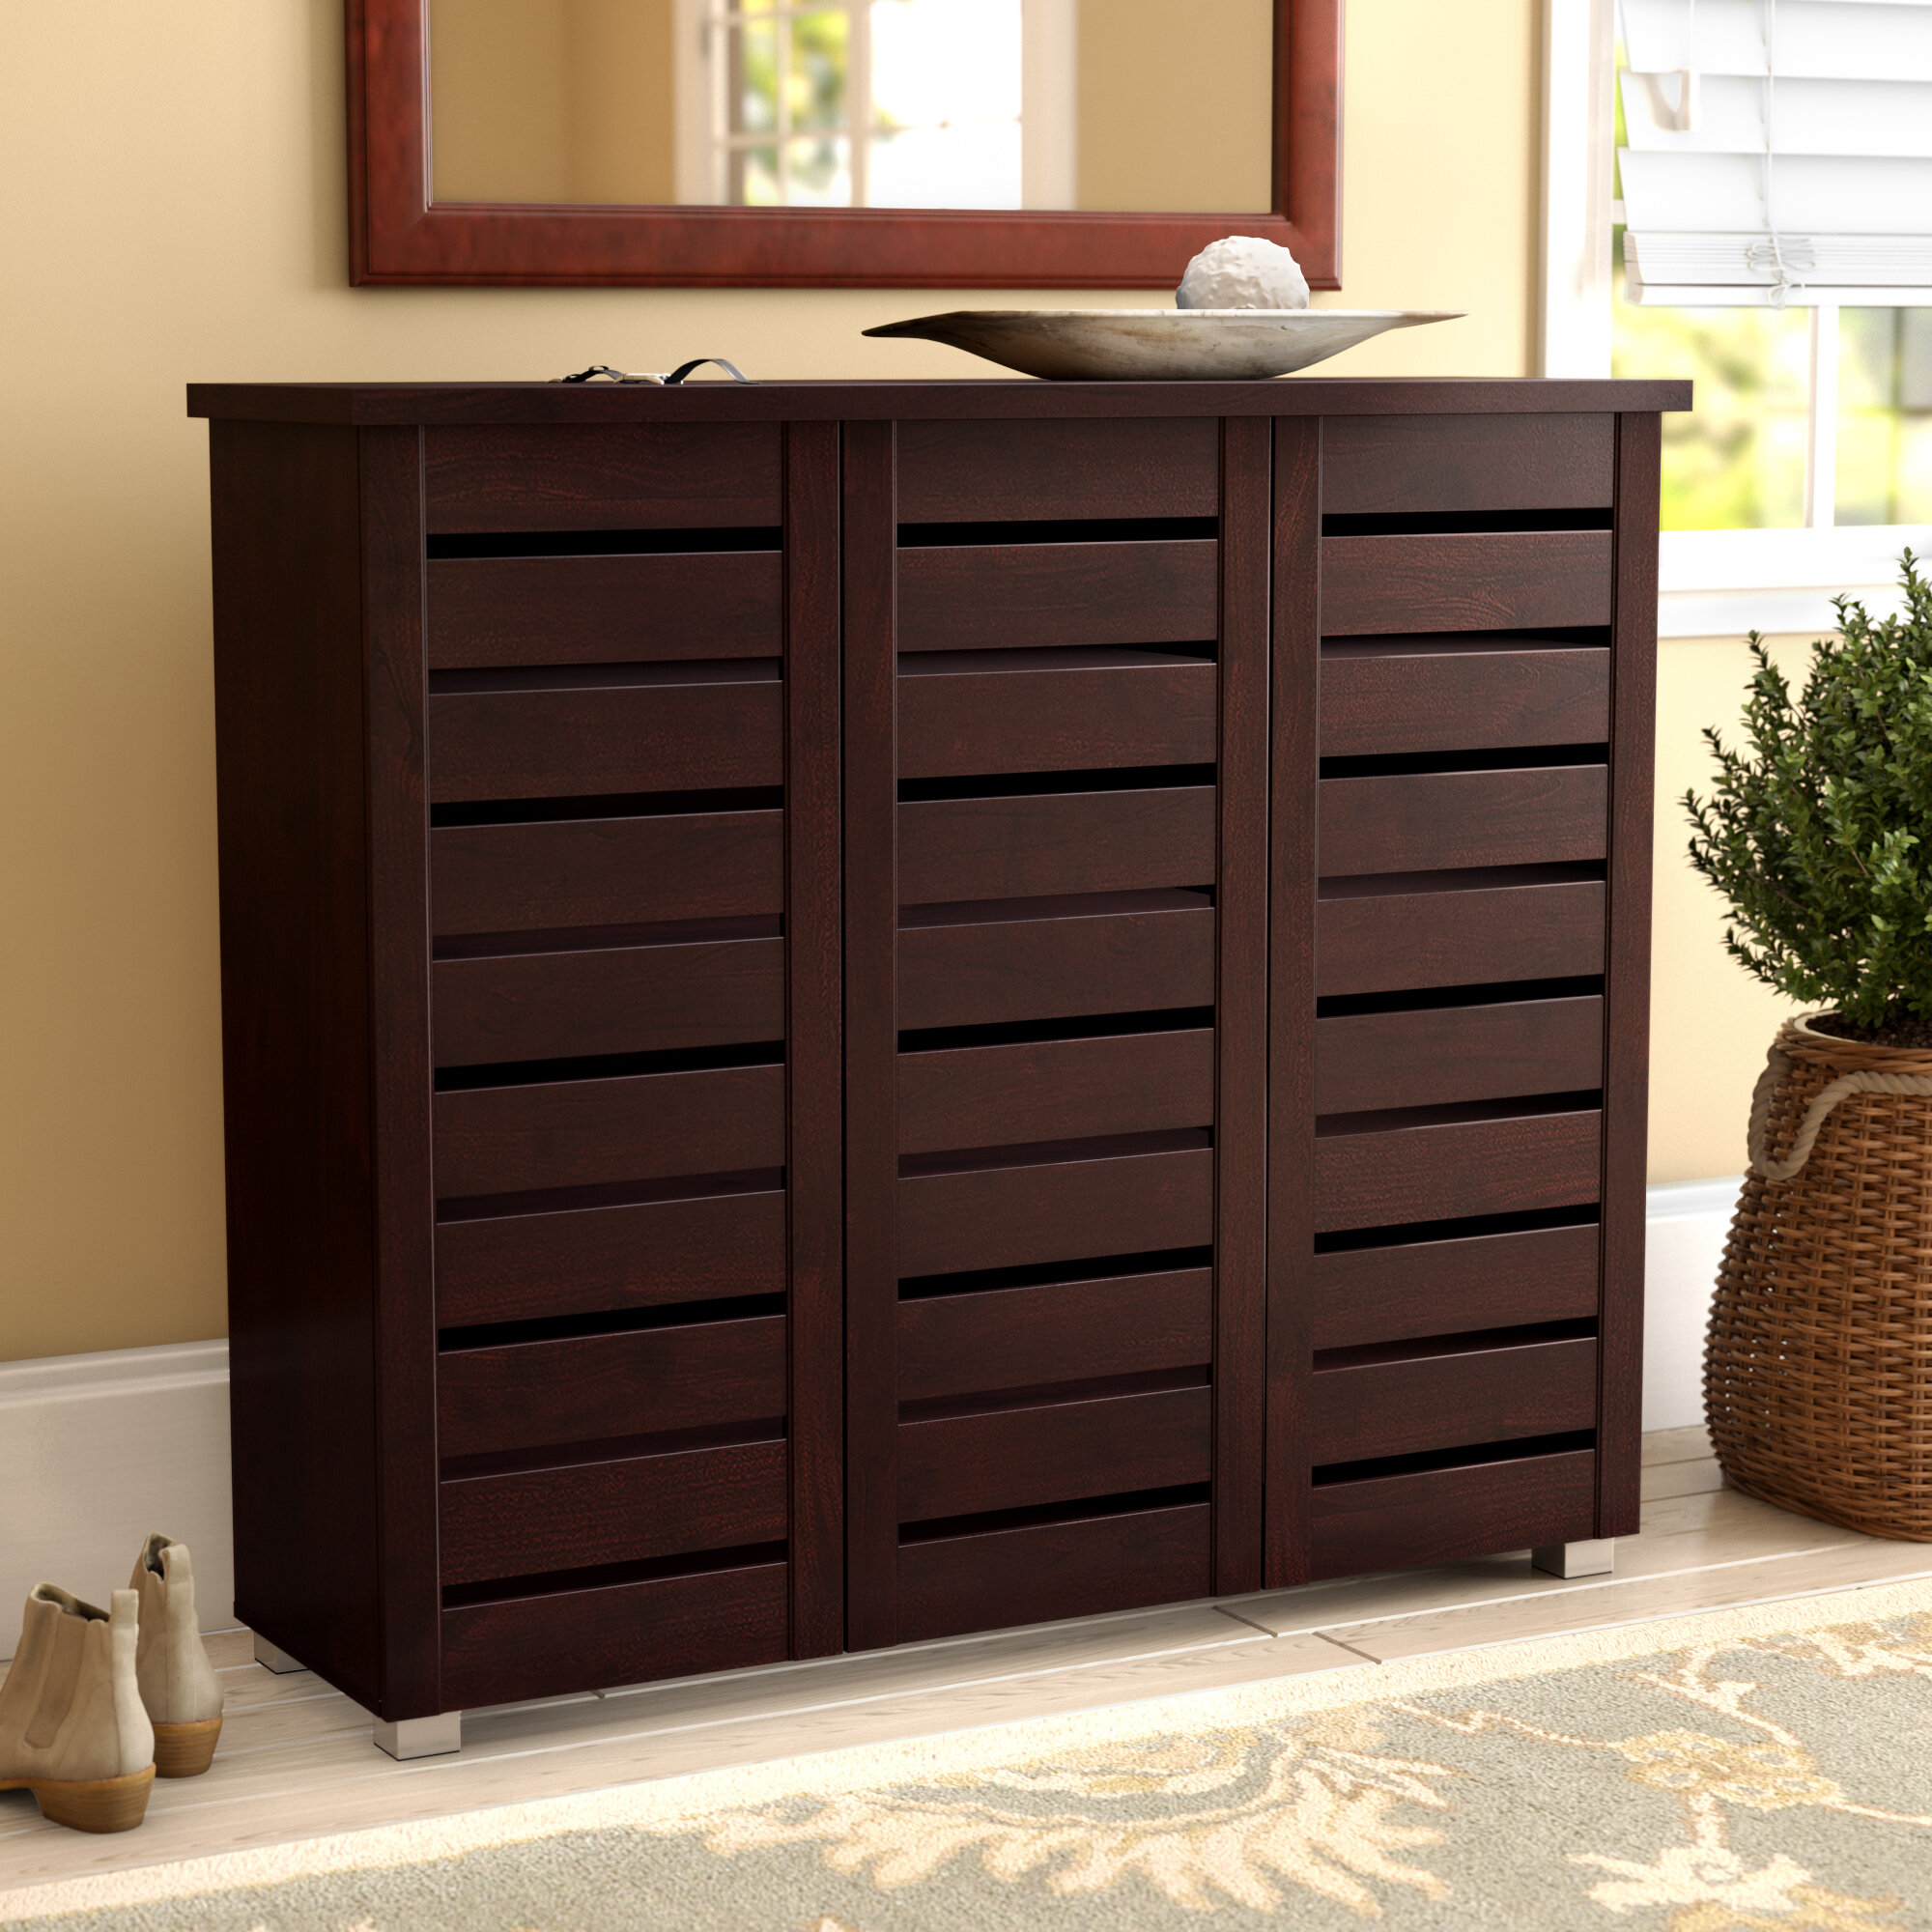 Details About Darby Home Co 20 Pair Slatted Shoe Storage Cabinet